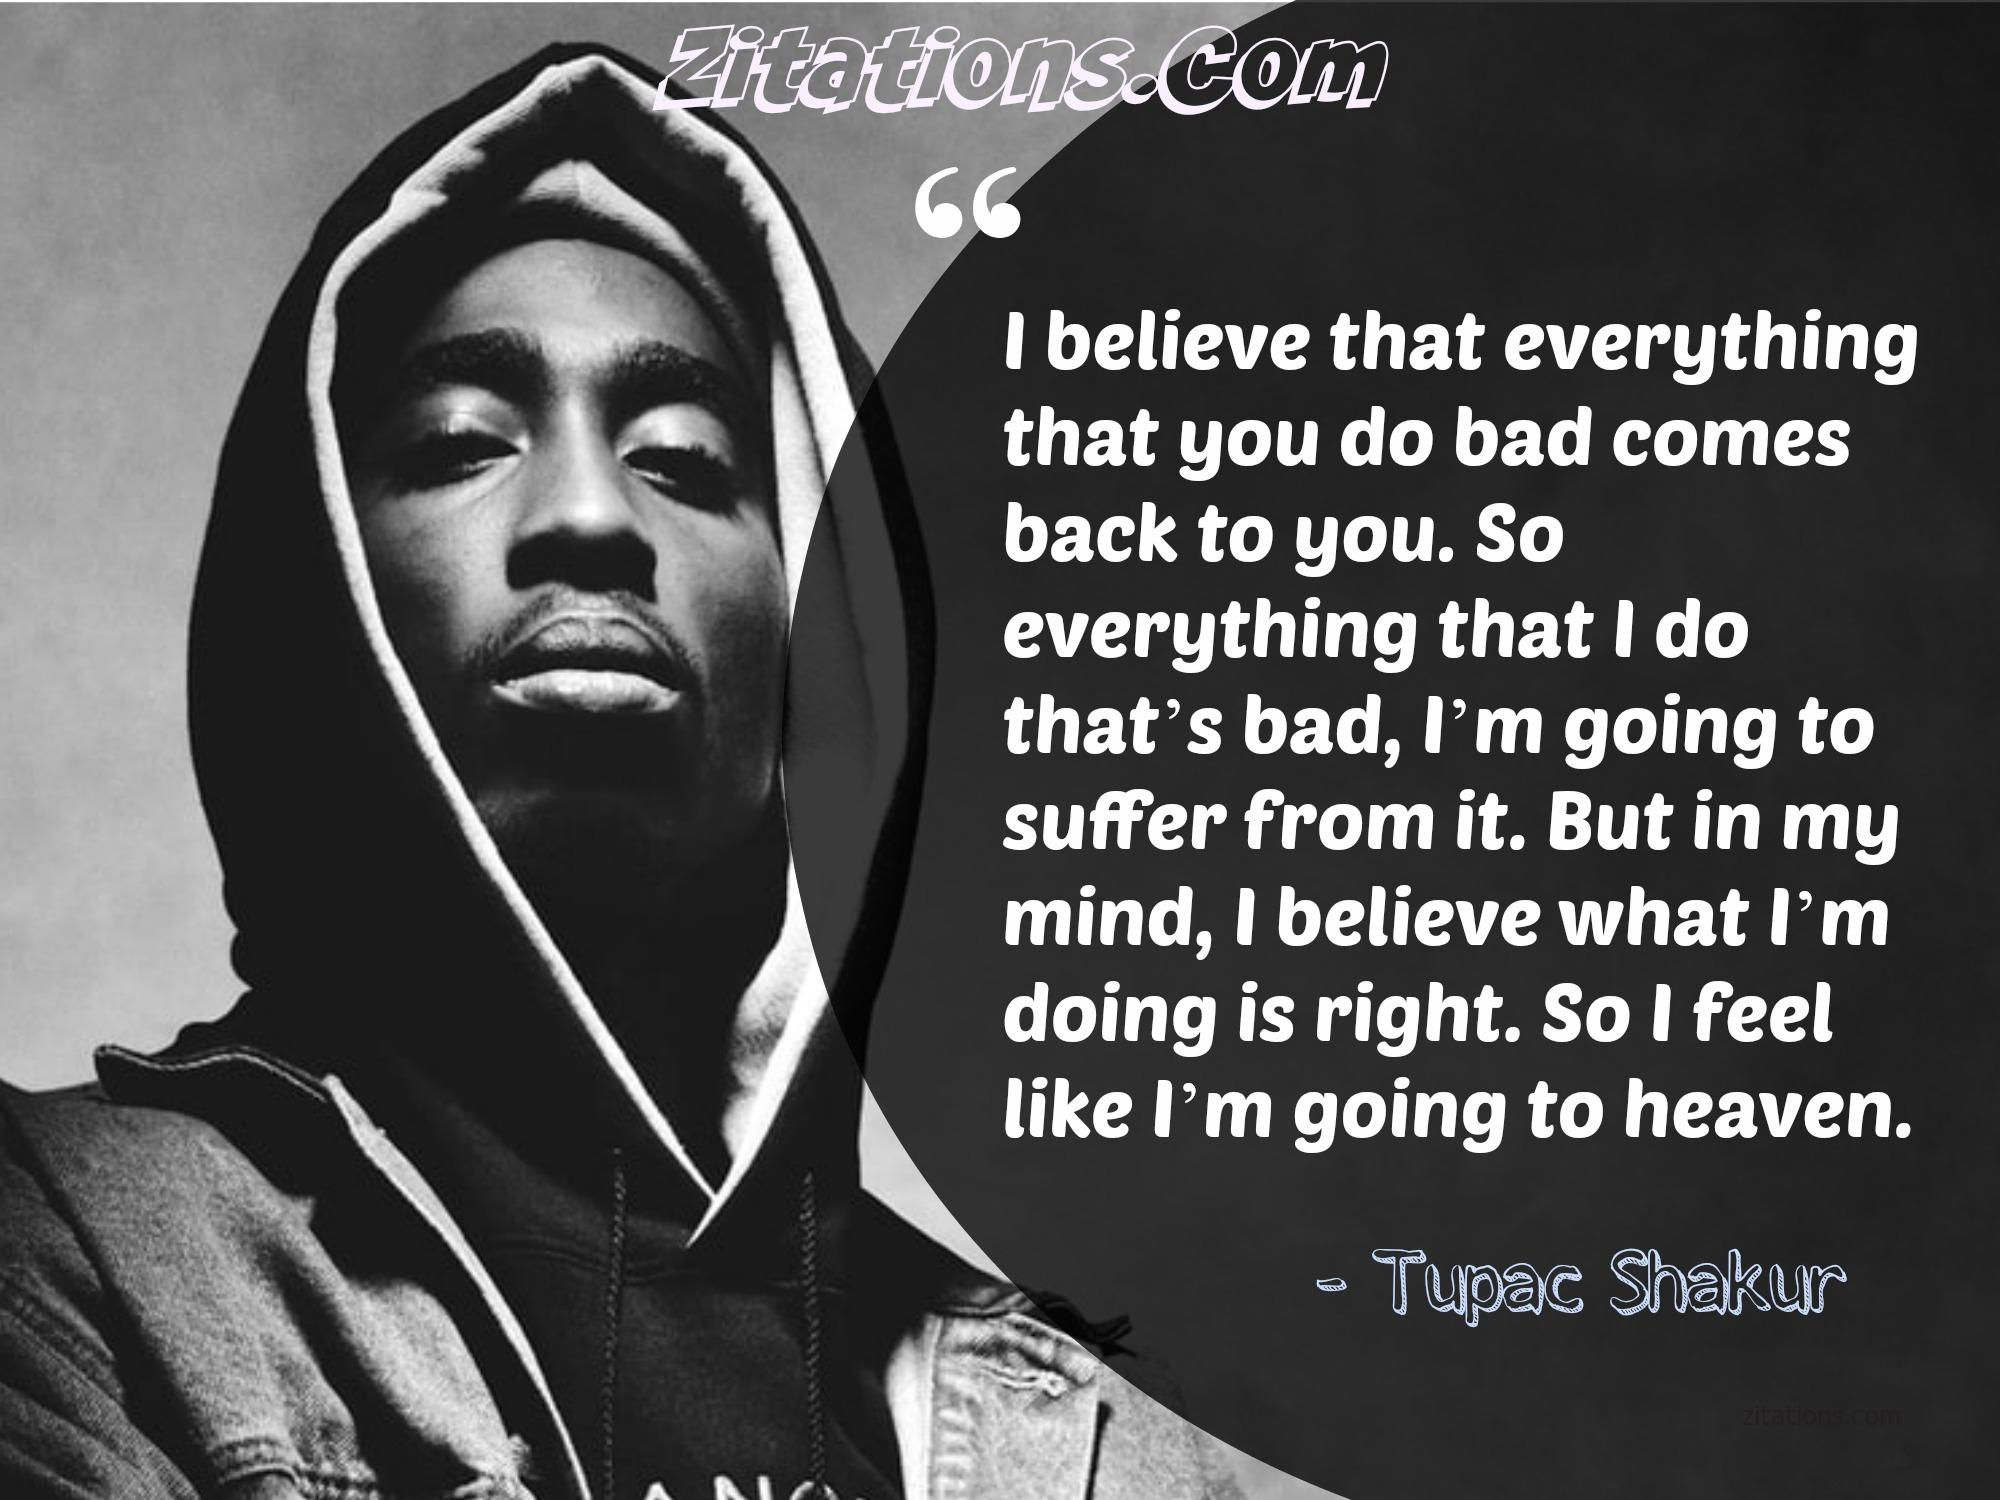 Best Tupac Quotes Best Tupac Quotes (2Pac)   Top 10 Best   Highly Inspirational! Best Tupac Quotes